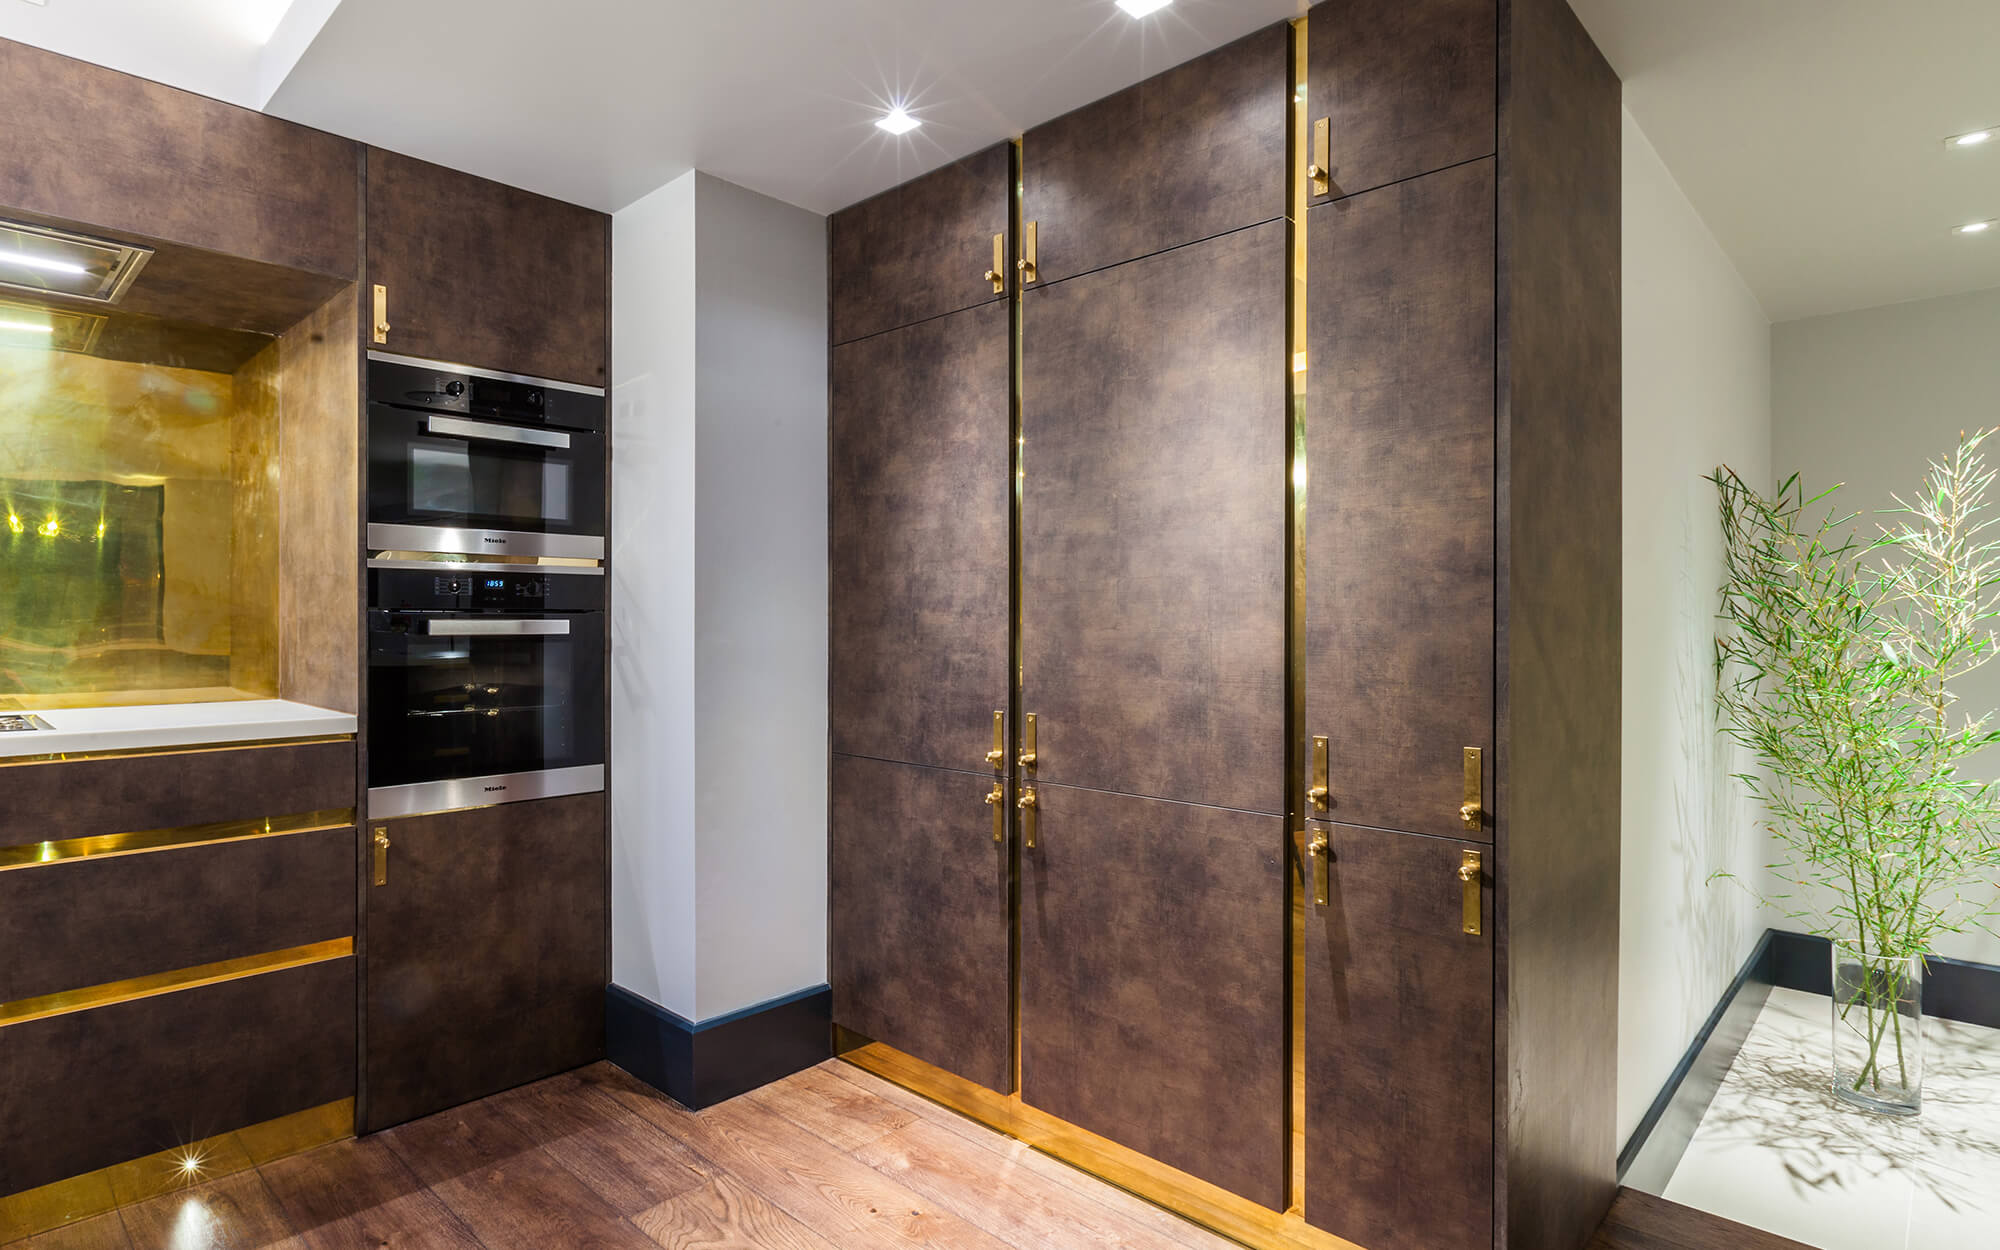 Dark kitchen cabinetry with brass detail and clever storage